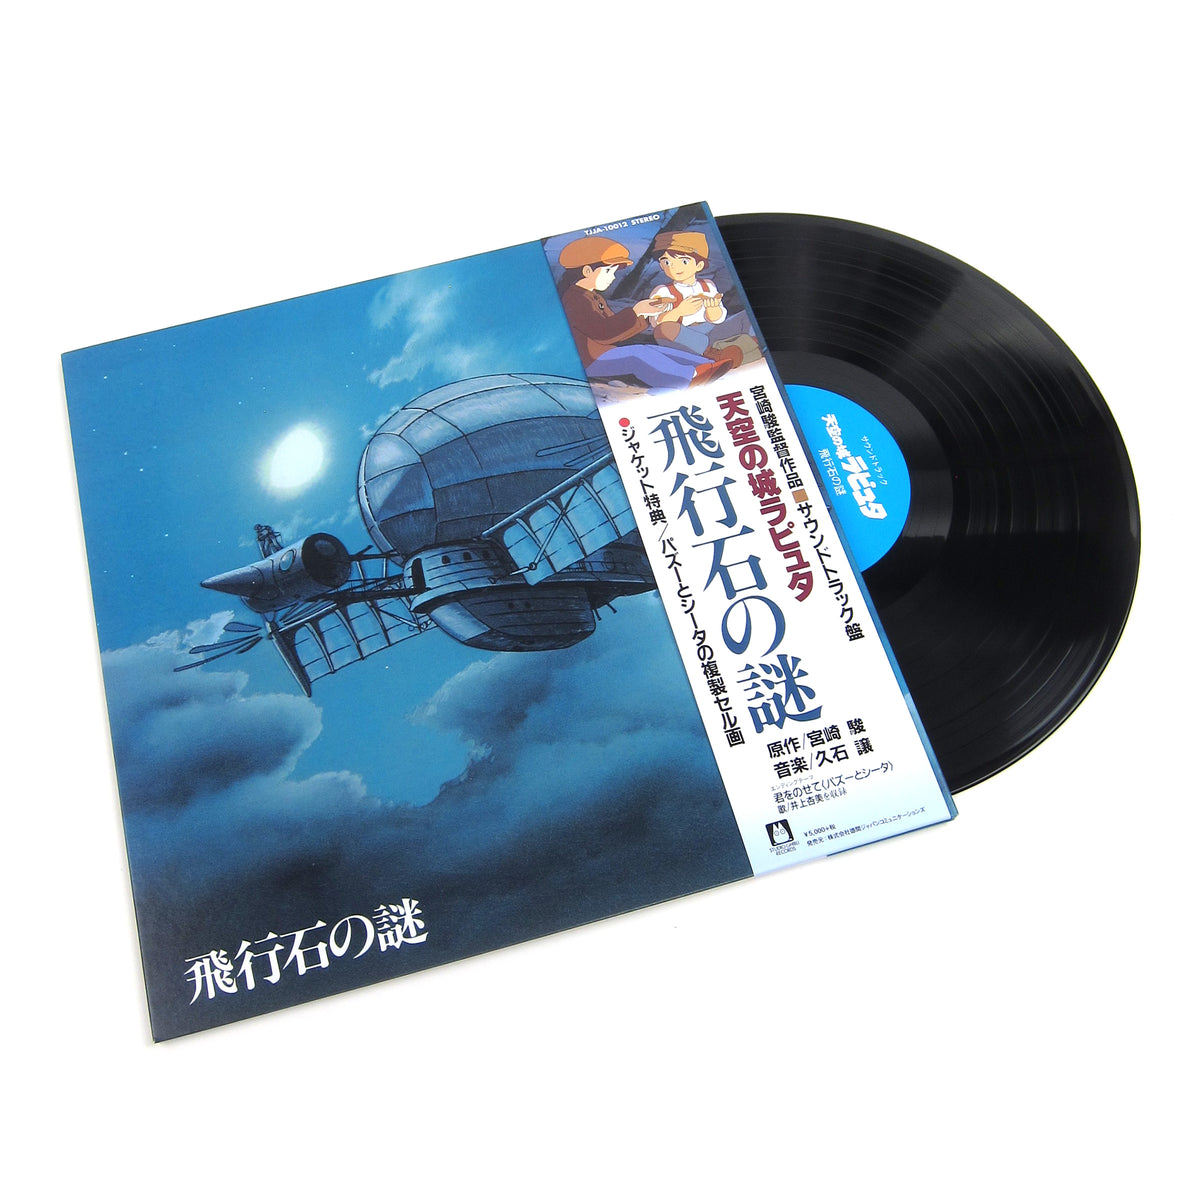 Joe Hisaishi: Castle In The Sky - Soundtrack Vinyl LP